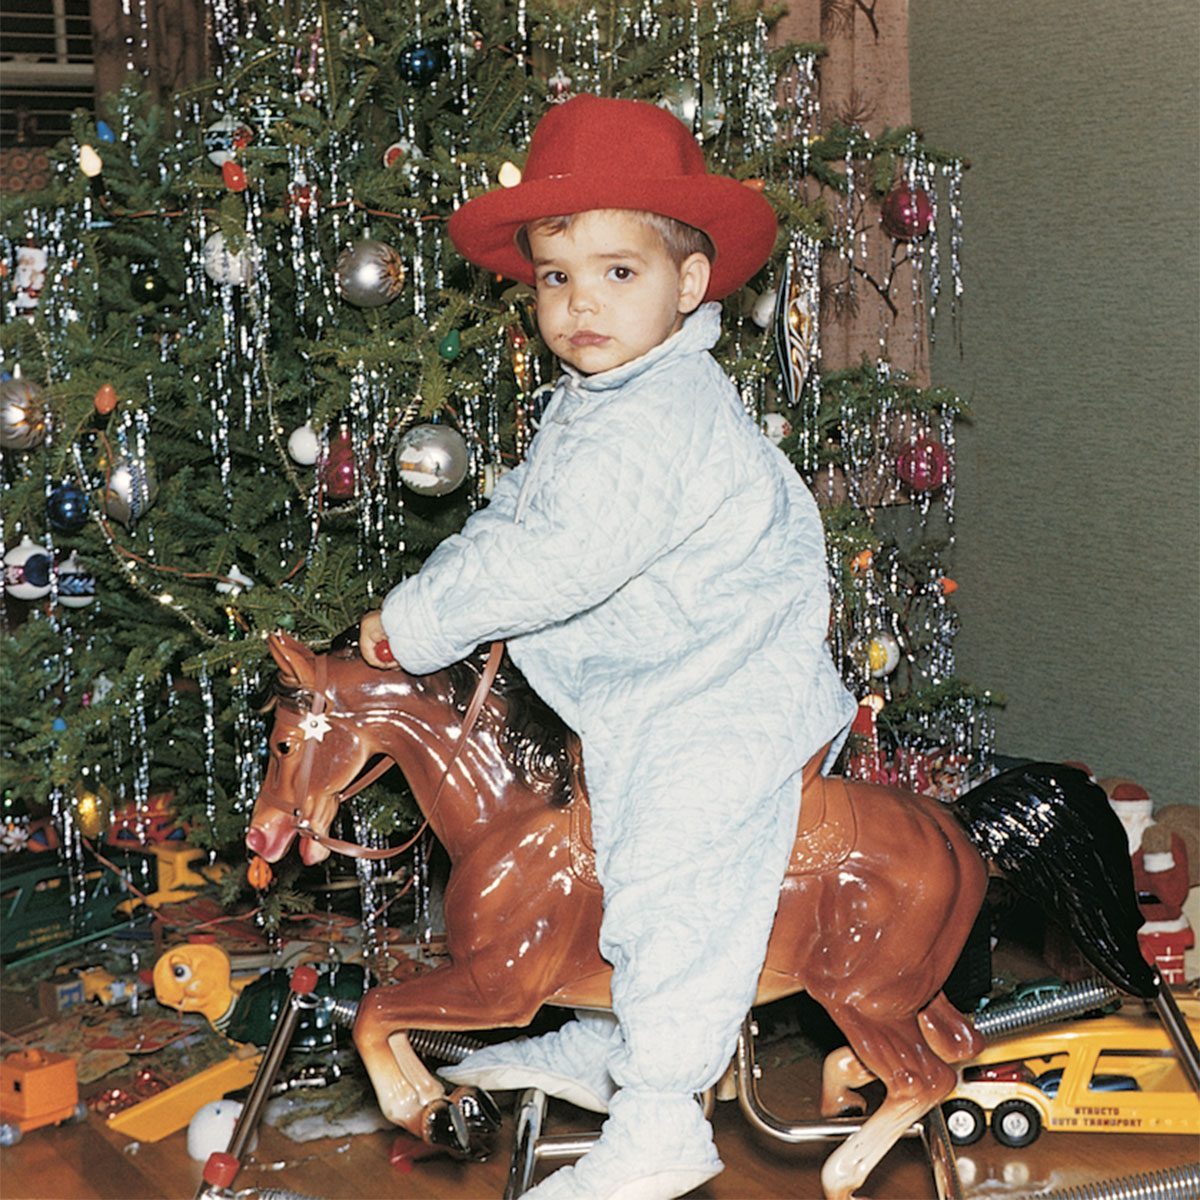 Boy riding a toy horse beside the Christmas tree